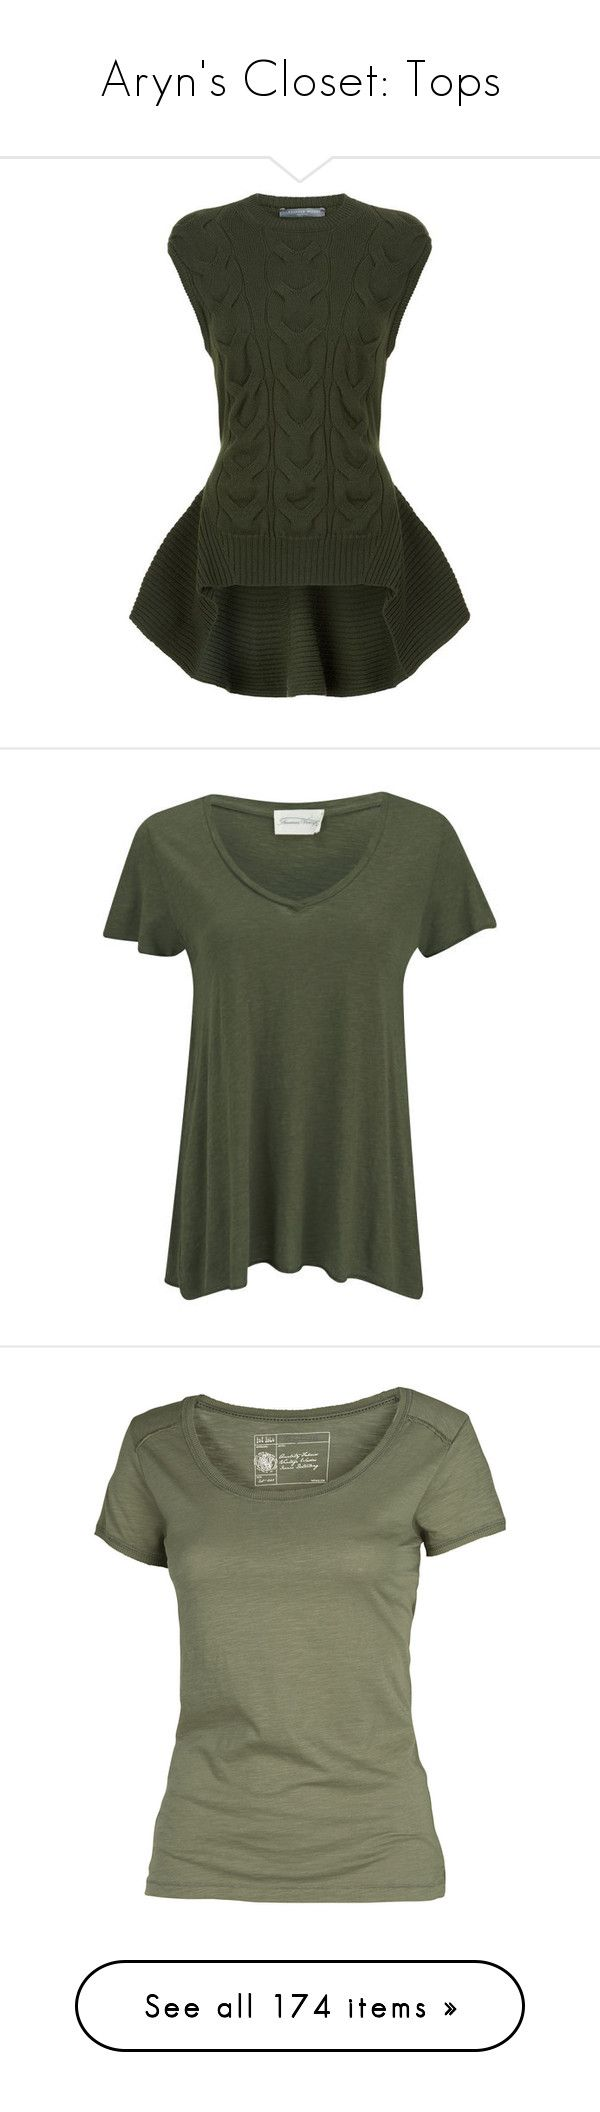 """""""Aryn's Closet: Tops"""" by batgirl87 ❤ liked on Polyvore featuring tops, sweaters, alexander mcqueen, shirts, asymmetrical peplum top, olive sweater, army green sweater, alexander mcqueen shirt, olive green sweater and t-shirts"""